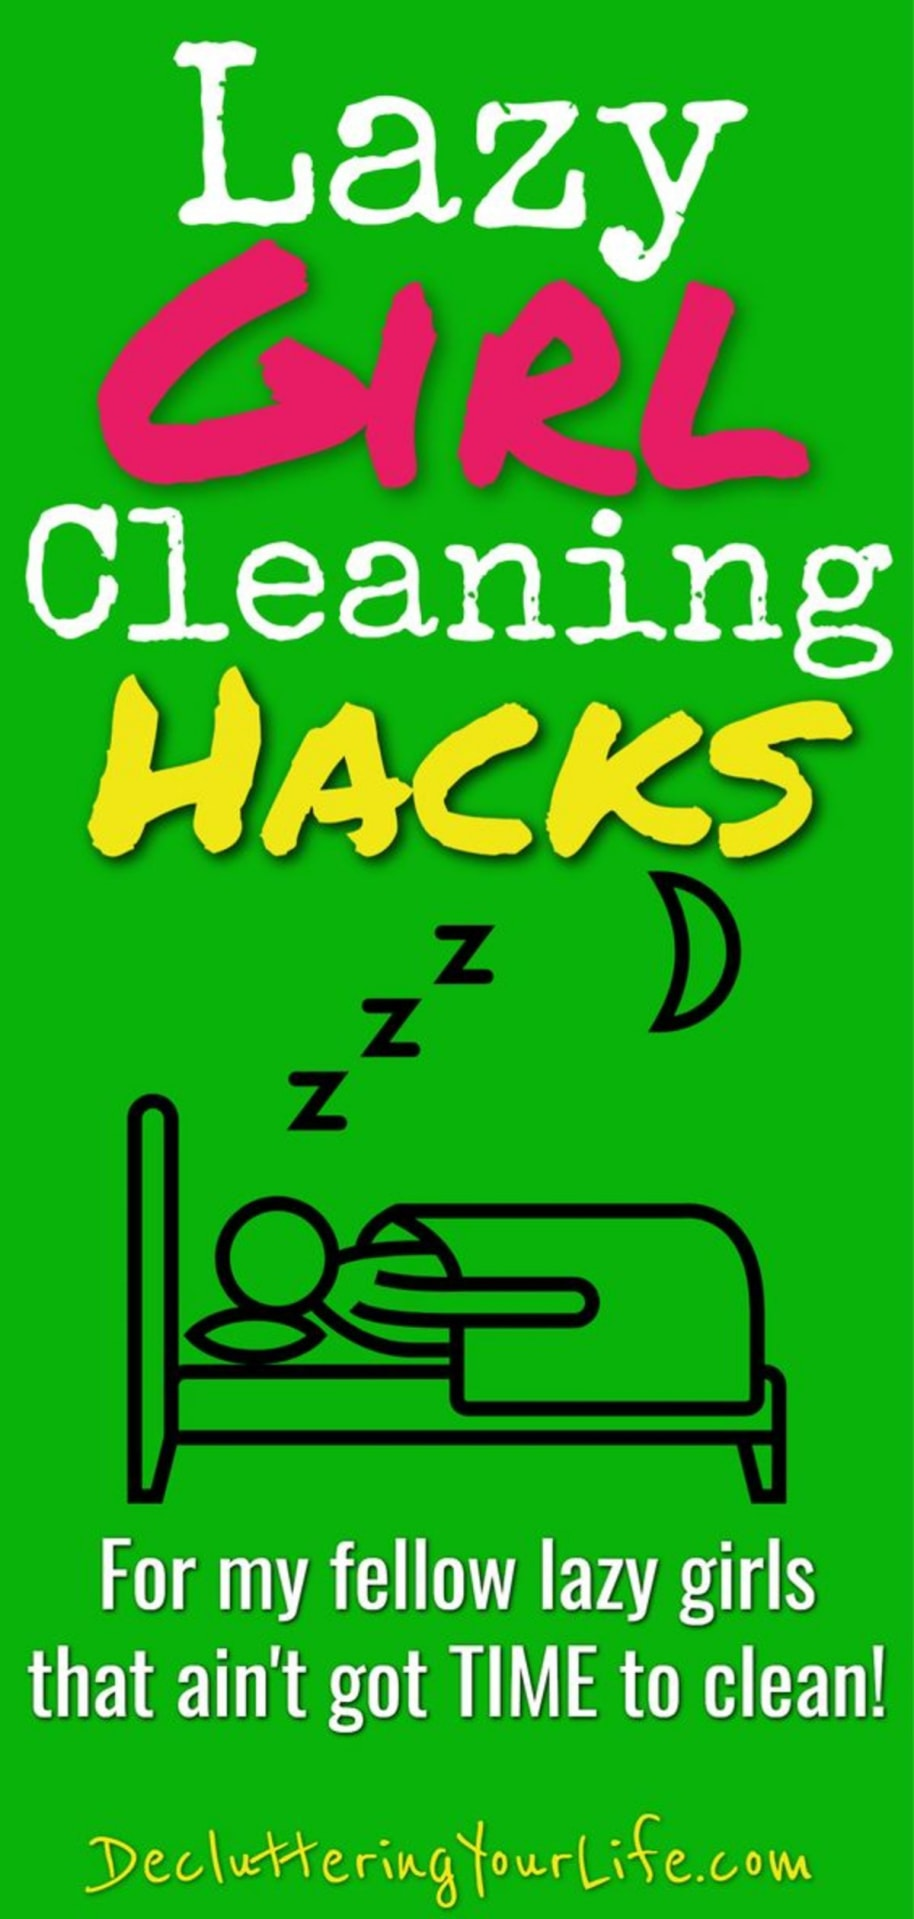 lazy girl cleaning hacks, tips and cheat sheets - useful cleaning life hacks for lazy people